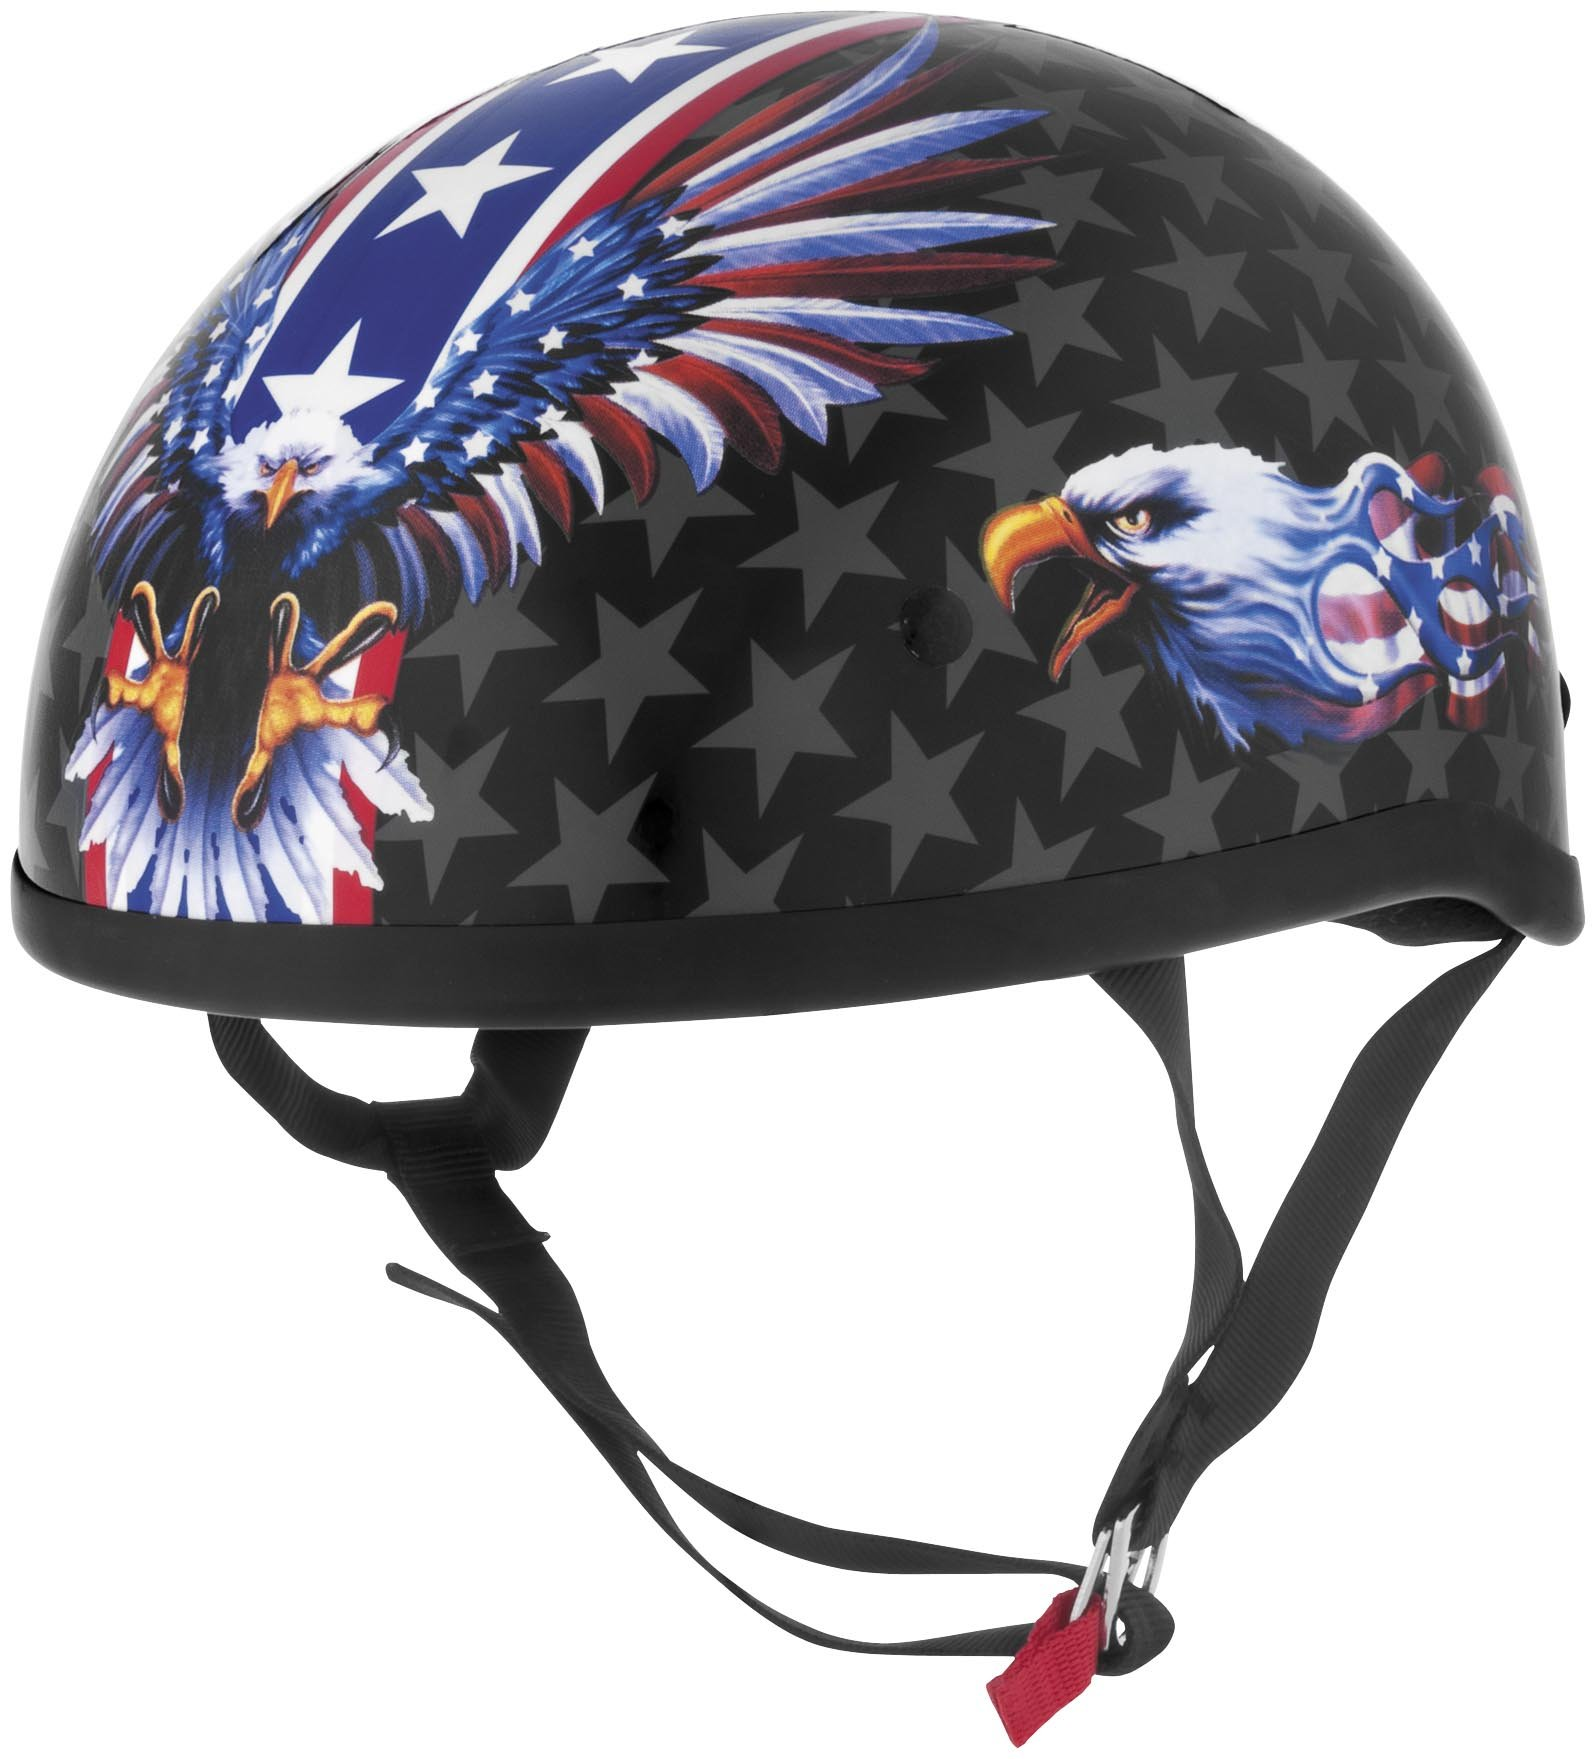 Amazon.com: Skid Lid USA Flame Eagle Original Helmet (Multicolor, X-Small): Automotive